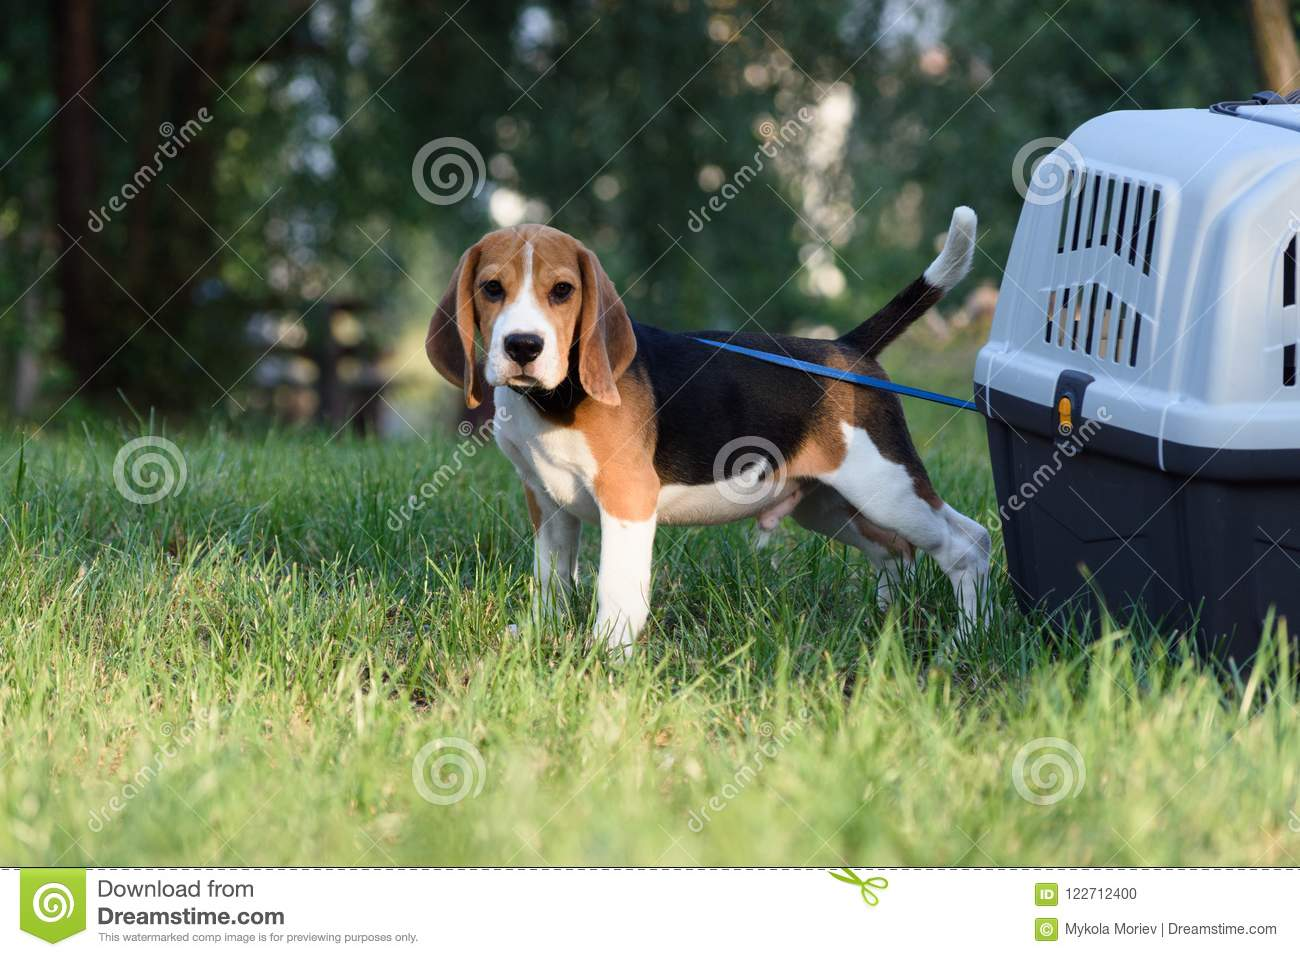 Beautiful Tricolor Puppy Of English Beagle stay near his travel box on a green Green Grass.